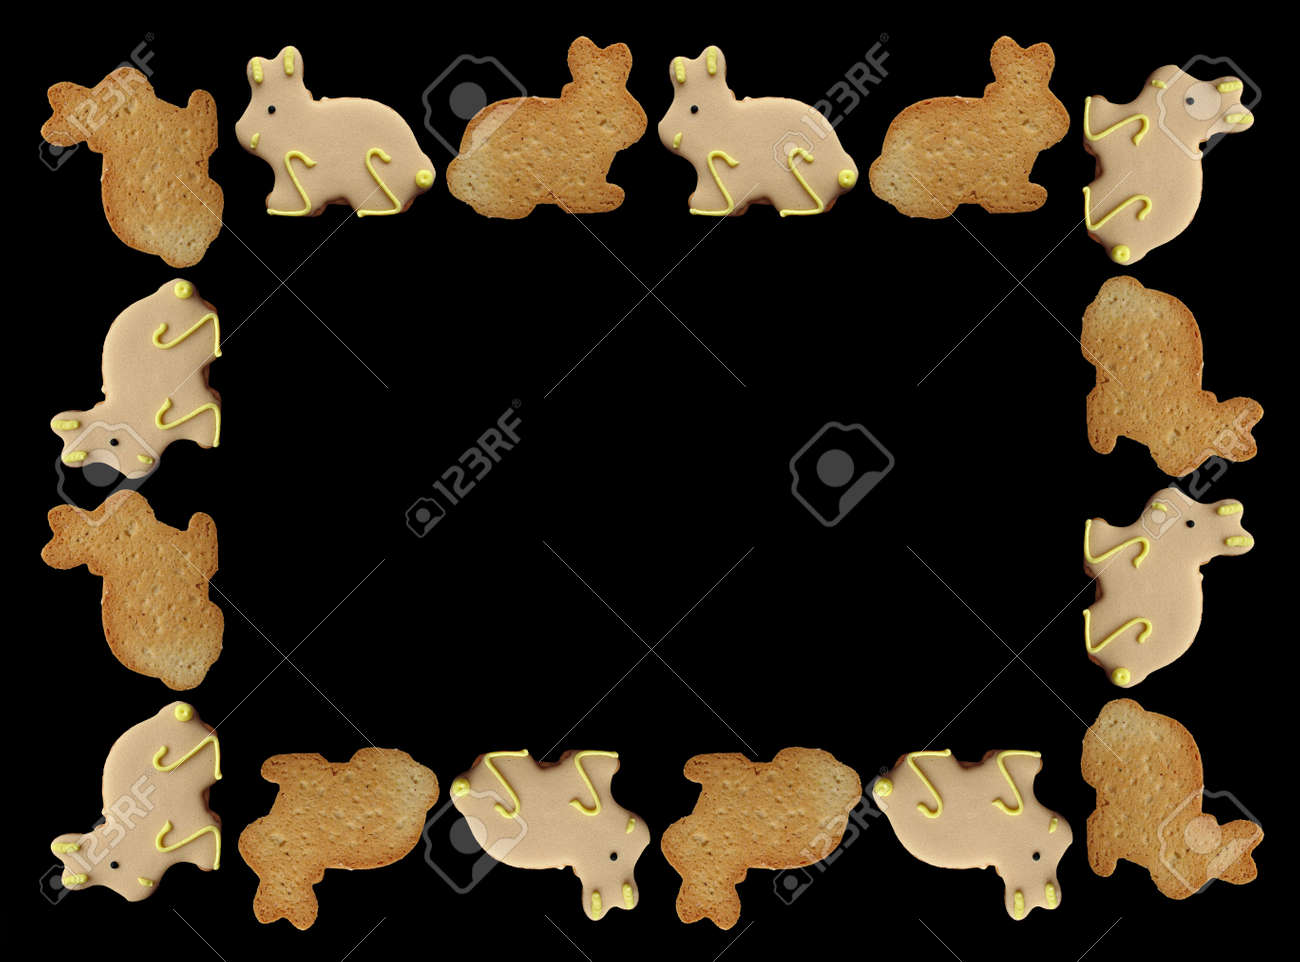 A frame of Easter cookies isolated on a black background. Stock Photo - 4672138